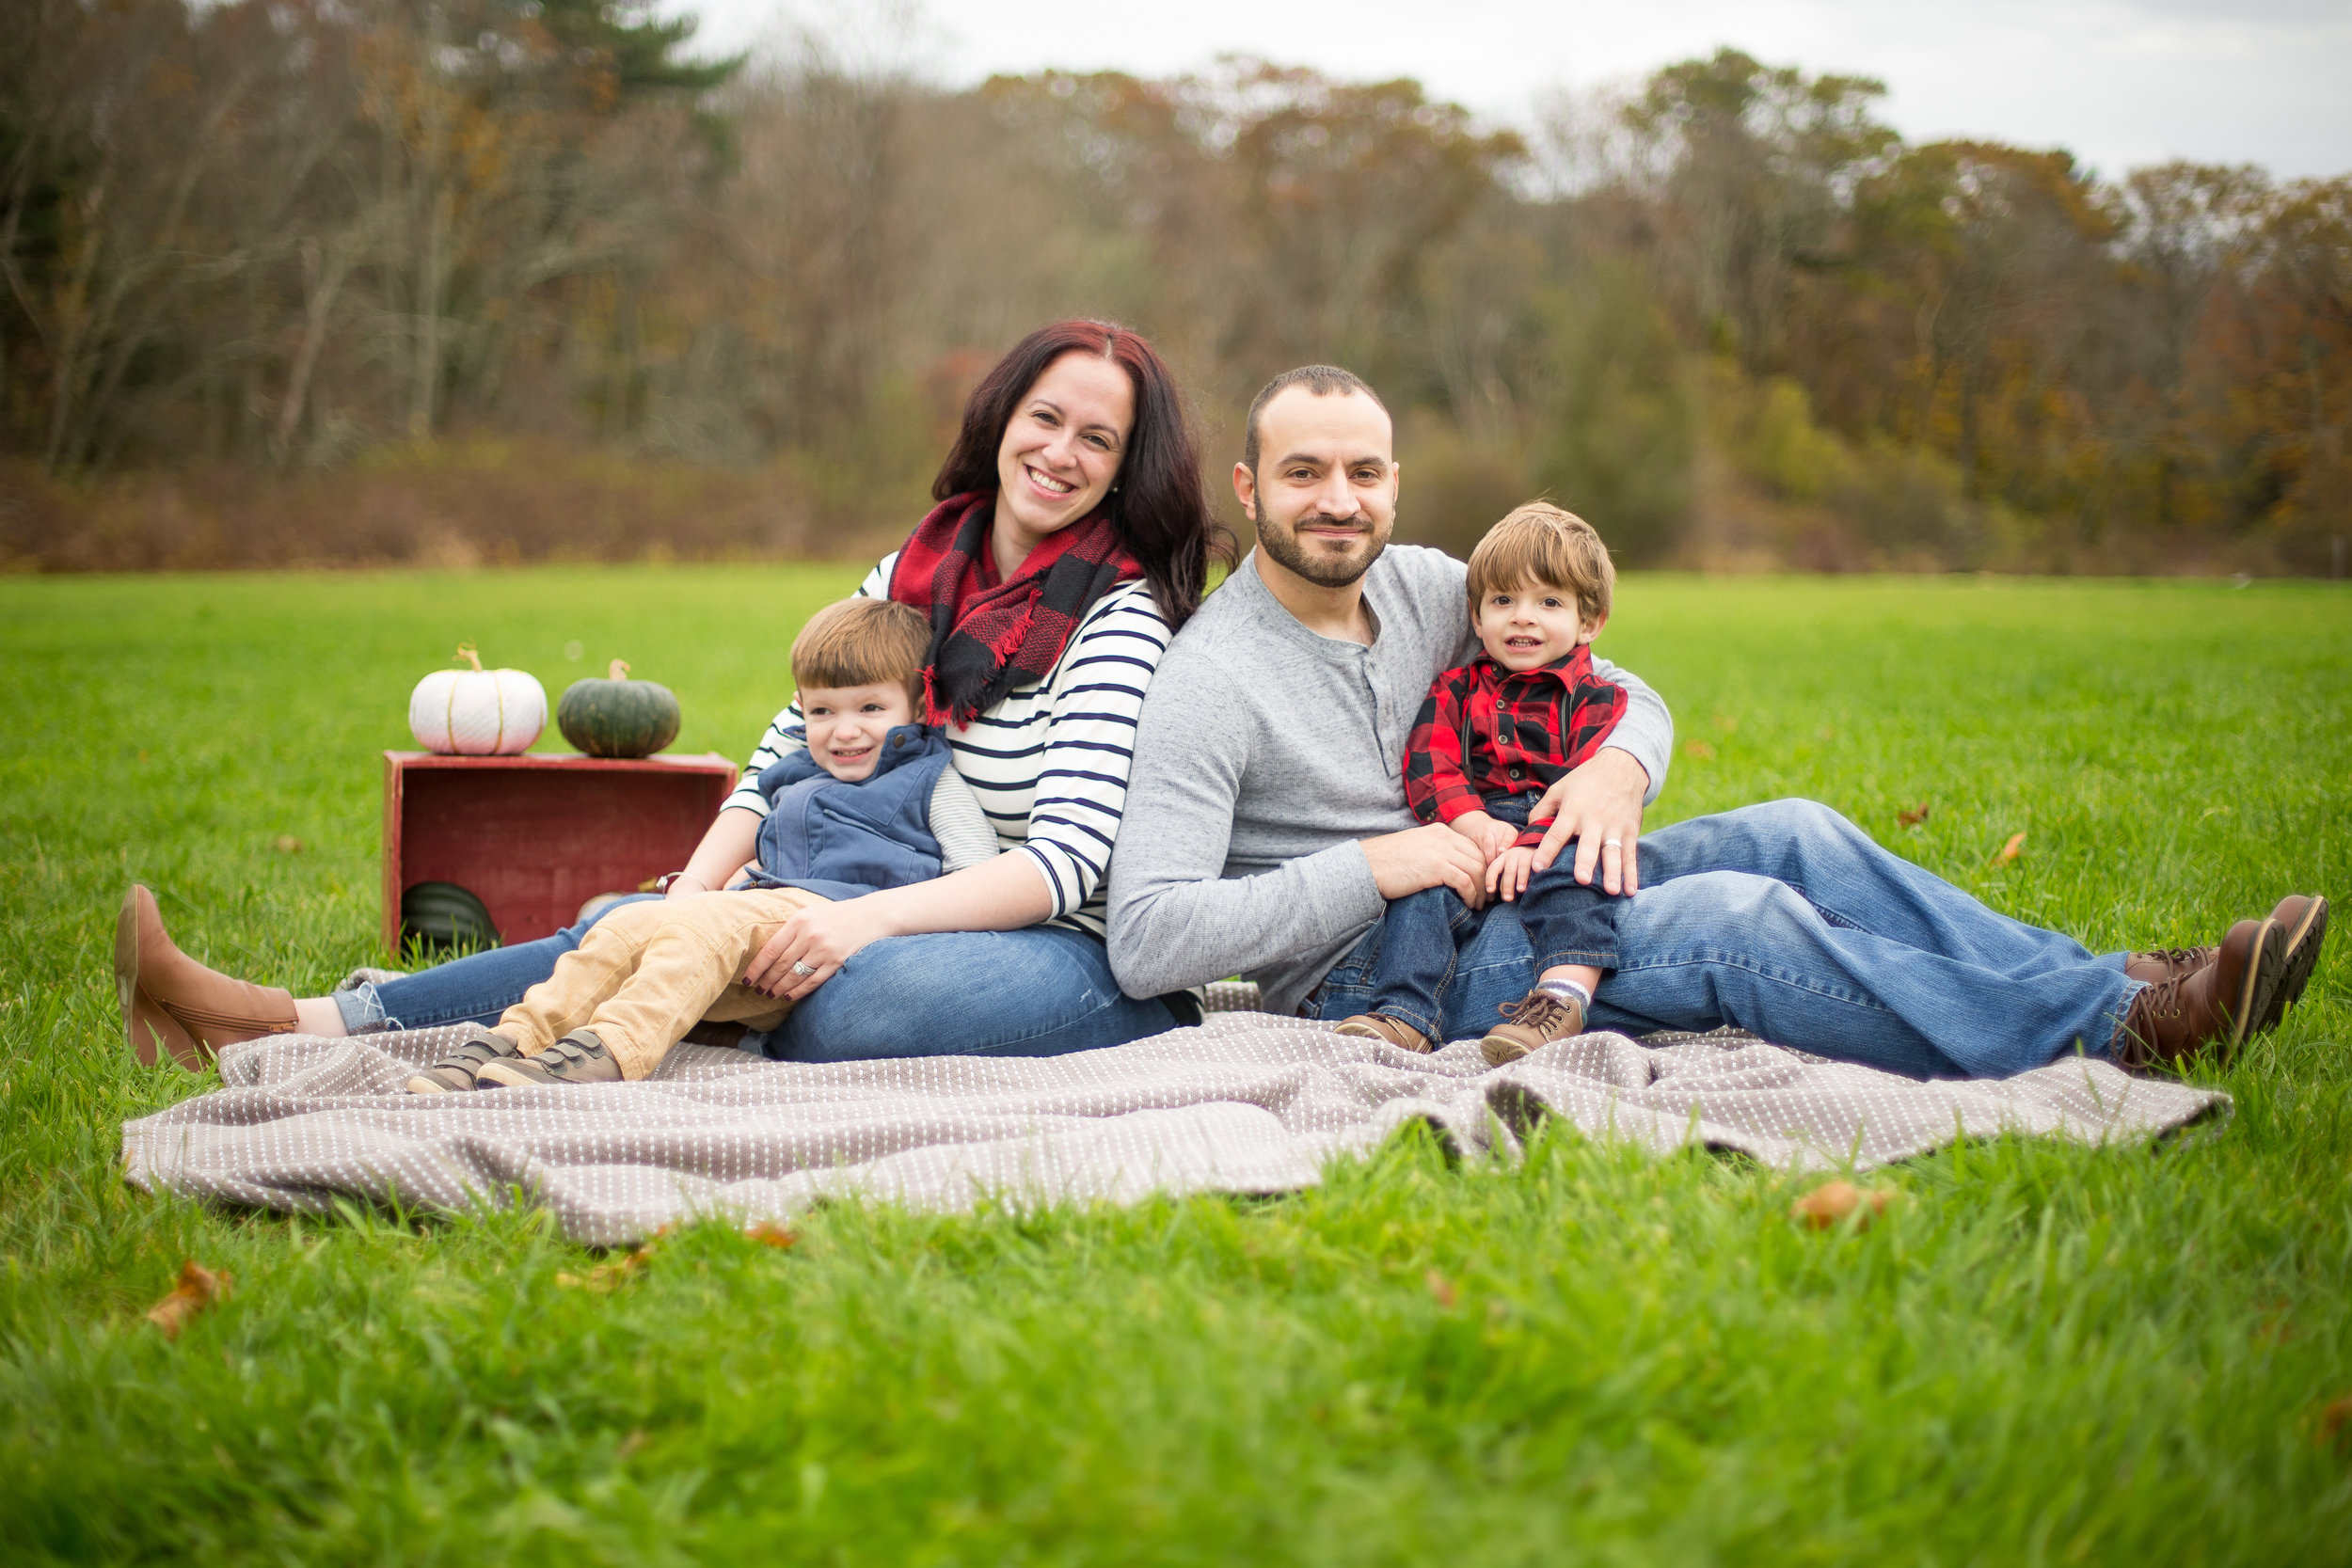 Family Portraiture workshop - Click for more info